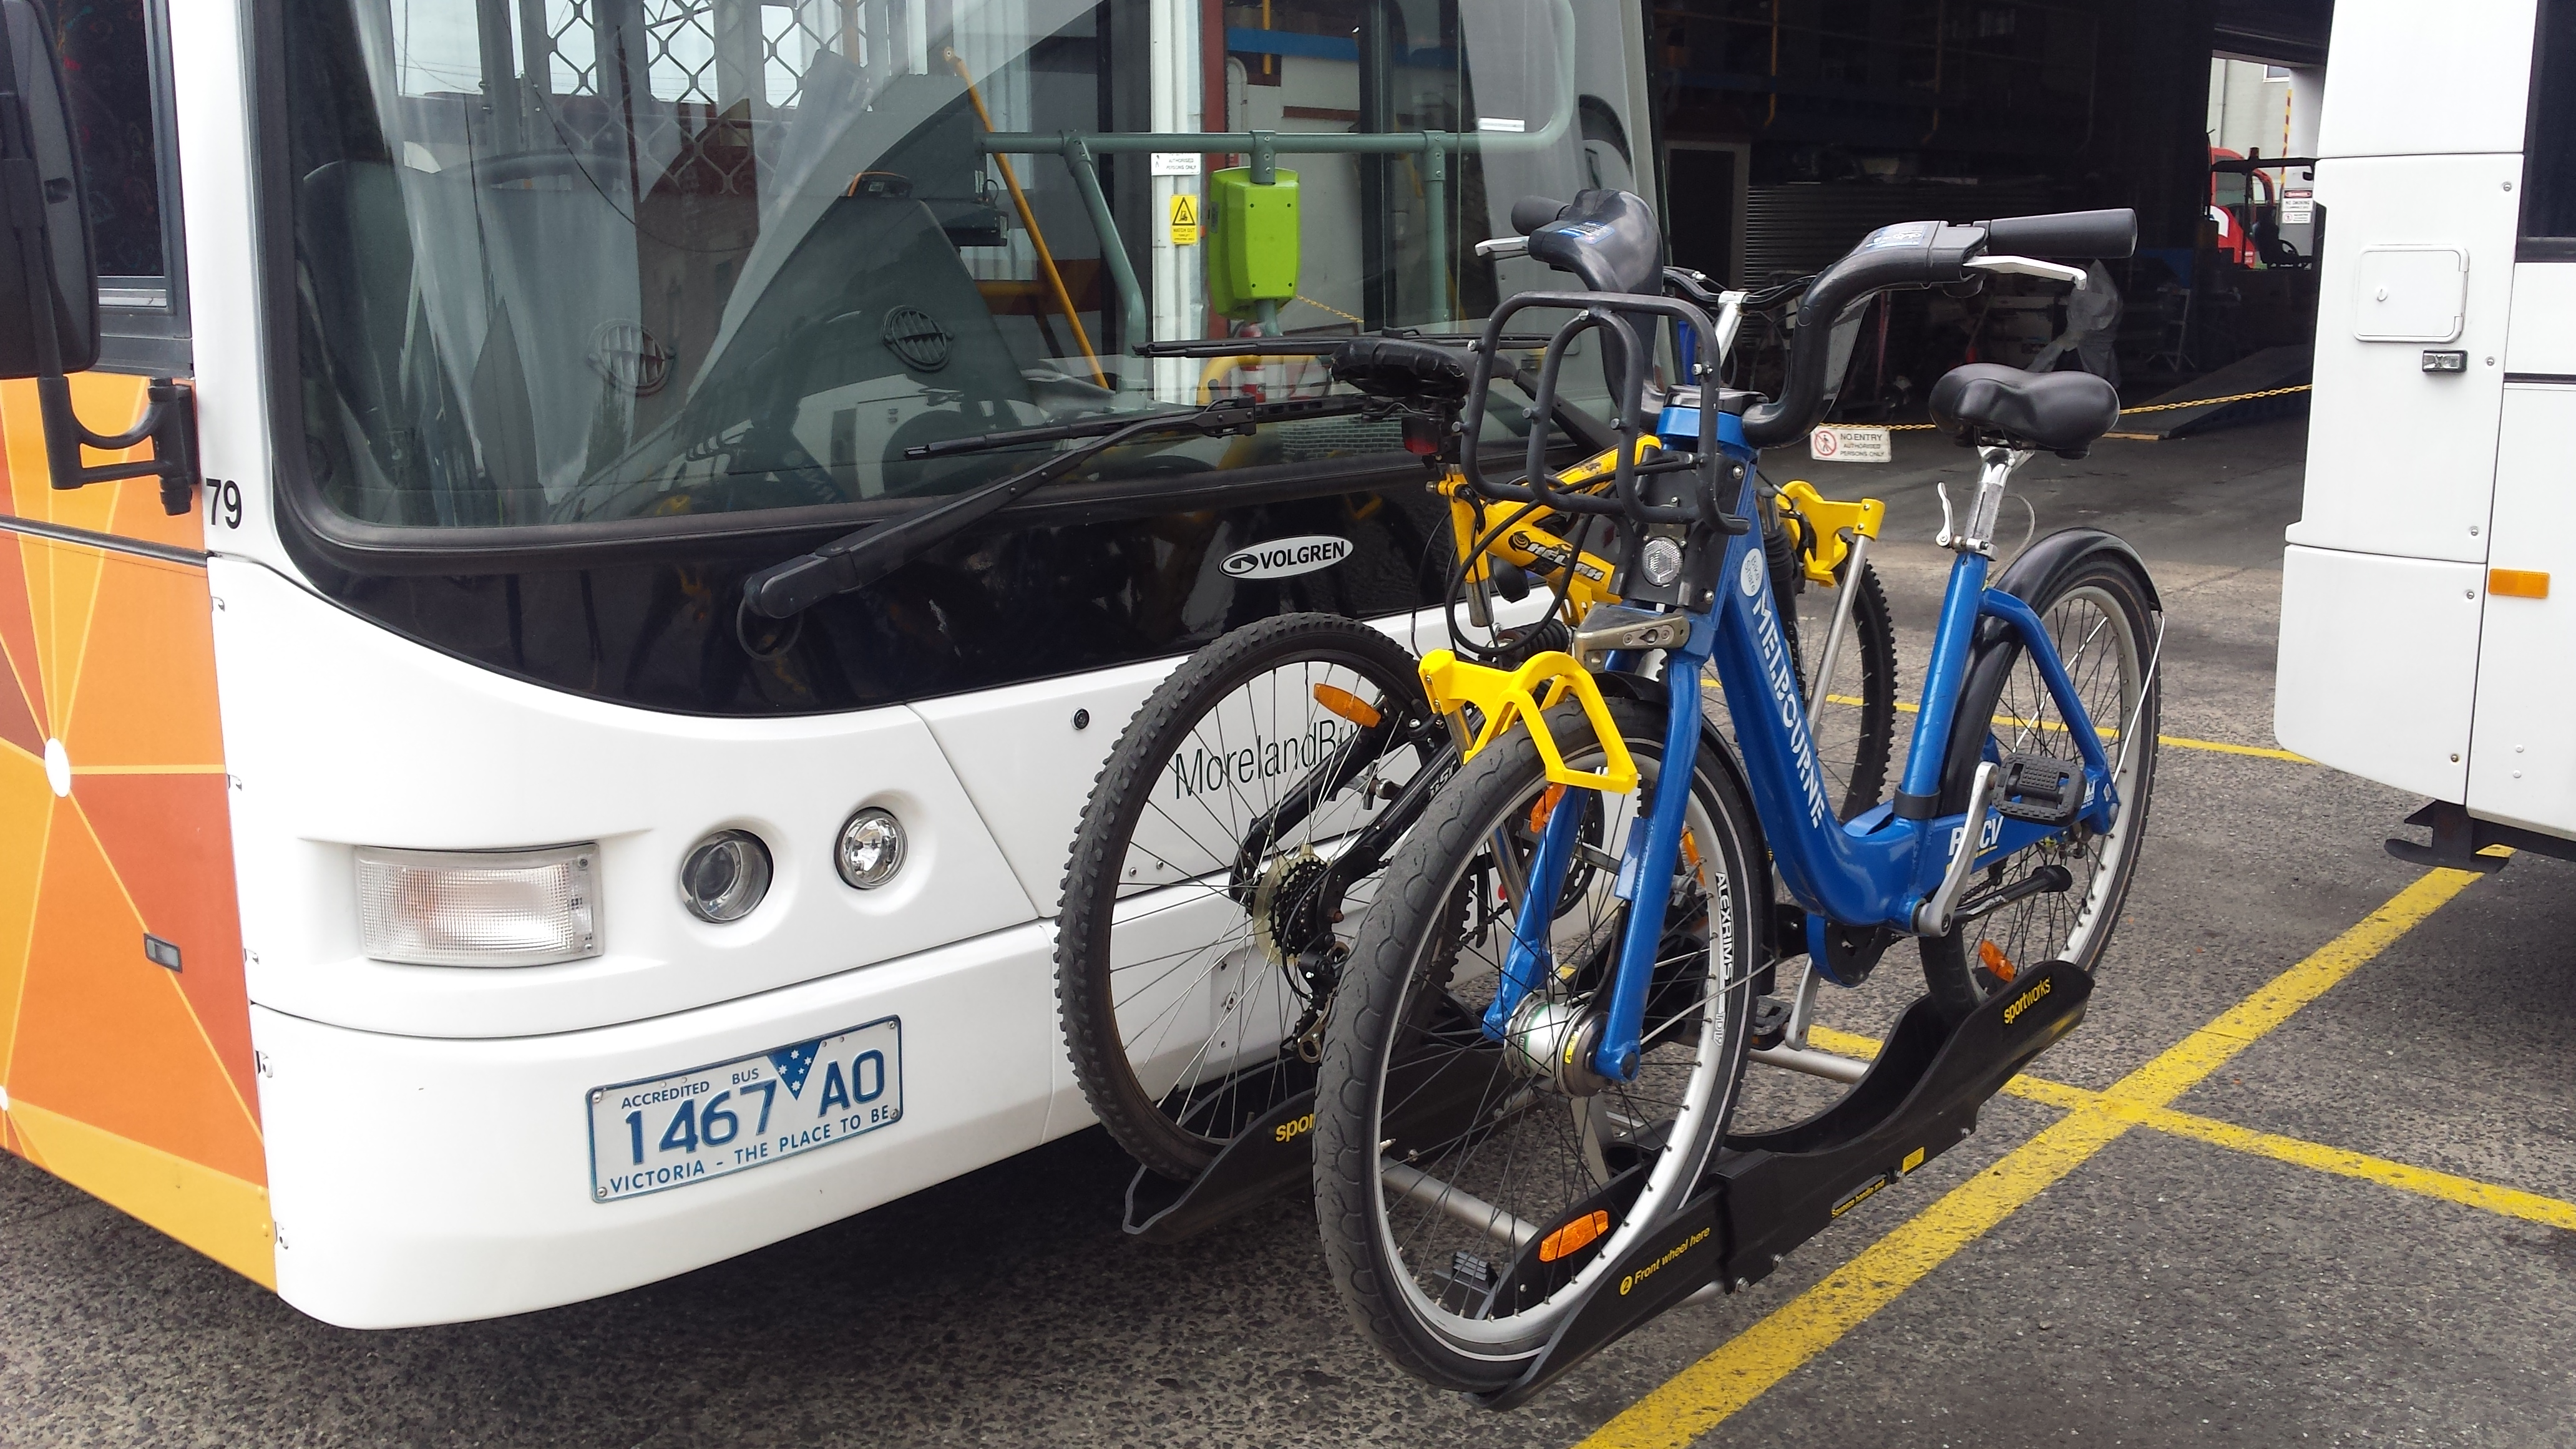 Bus Your Bike Trial Get Involved Transport For Victoria